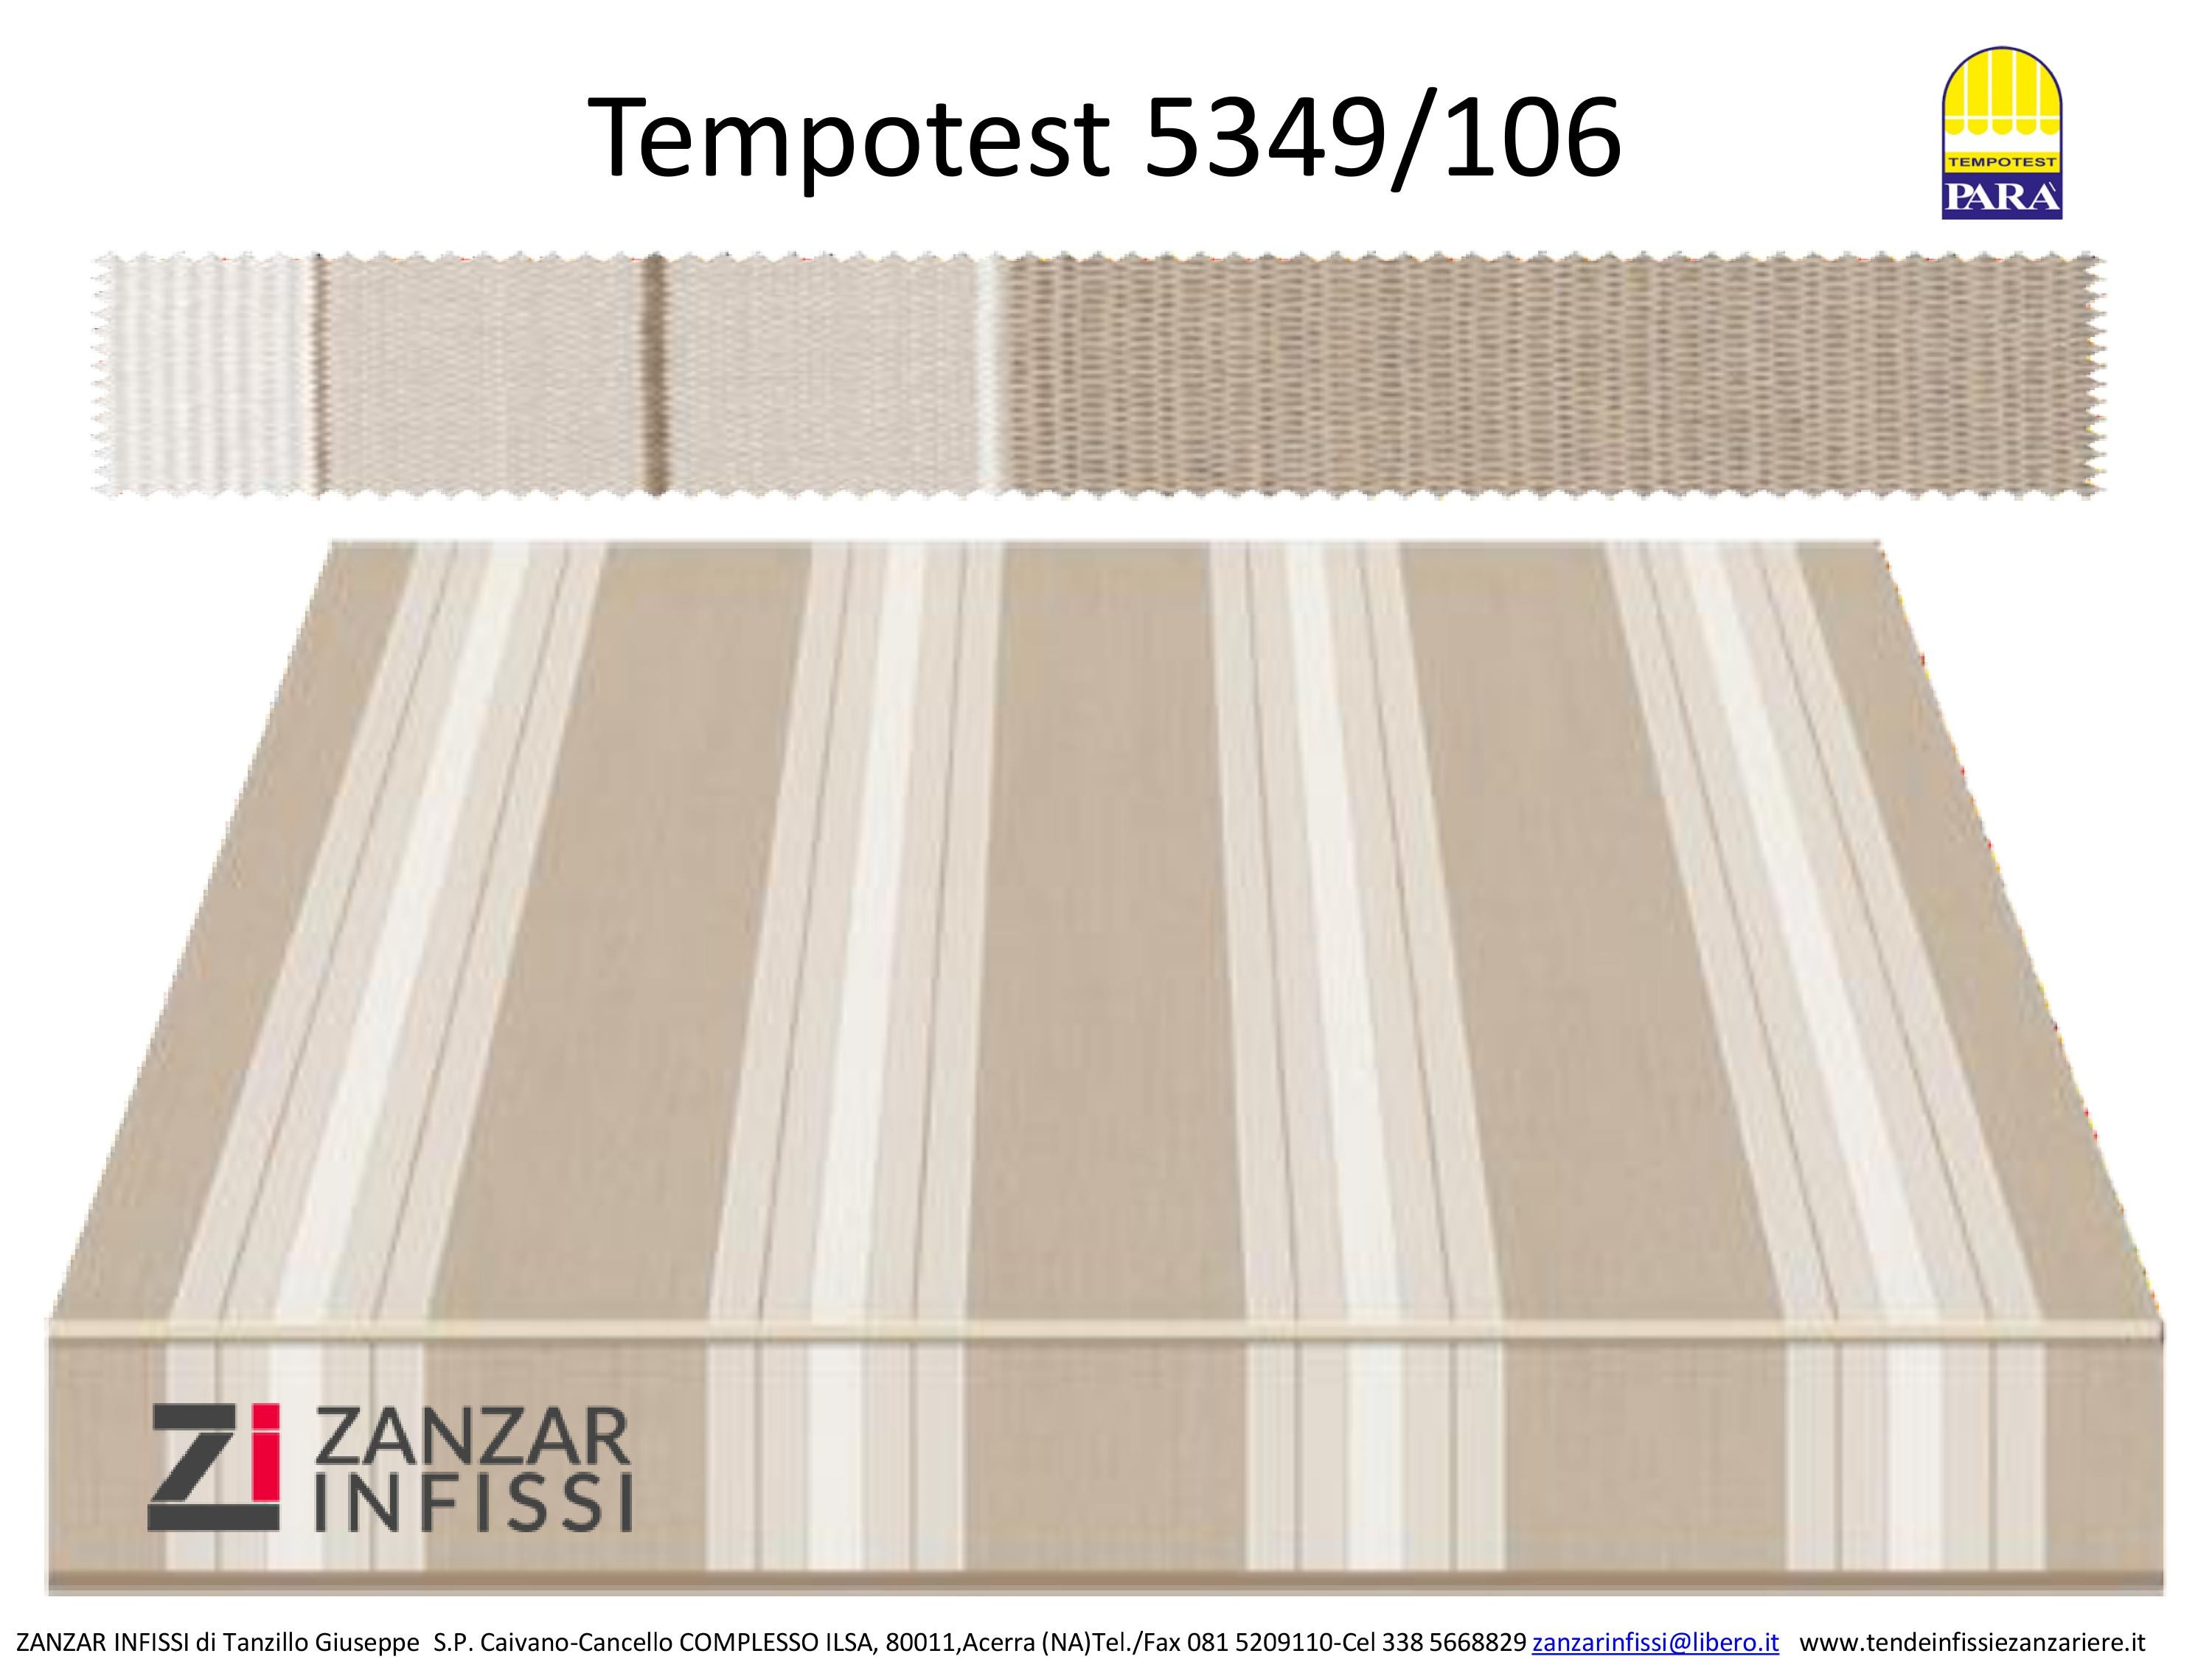 Tempotest 5349/106